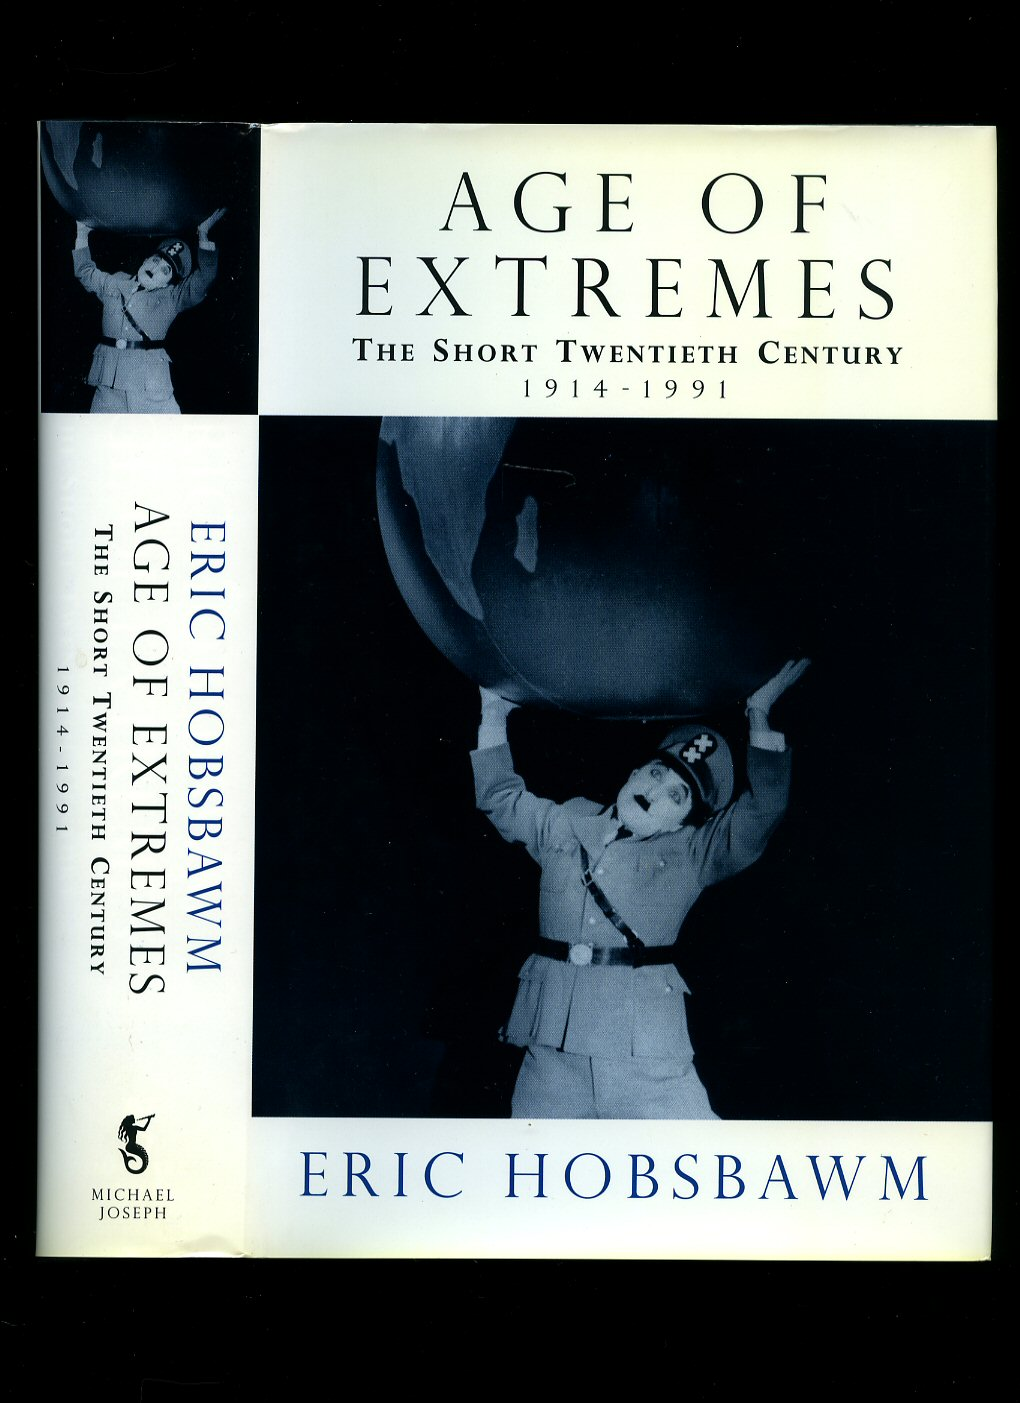 age of extremes essay We will write a custom essay sample on what factors make the 20th century the age of extremes the age of extremes began in 1914 with the first world war.